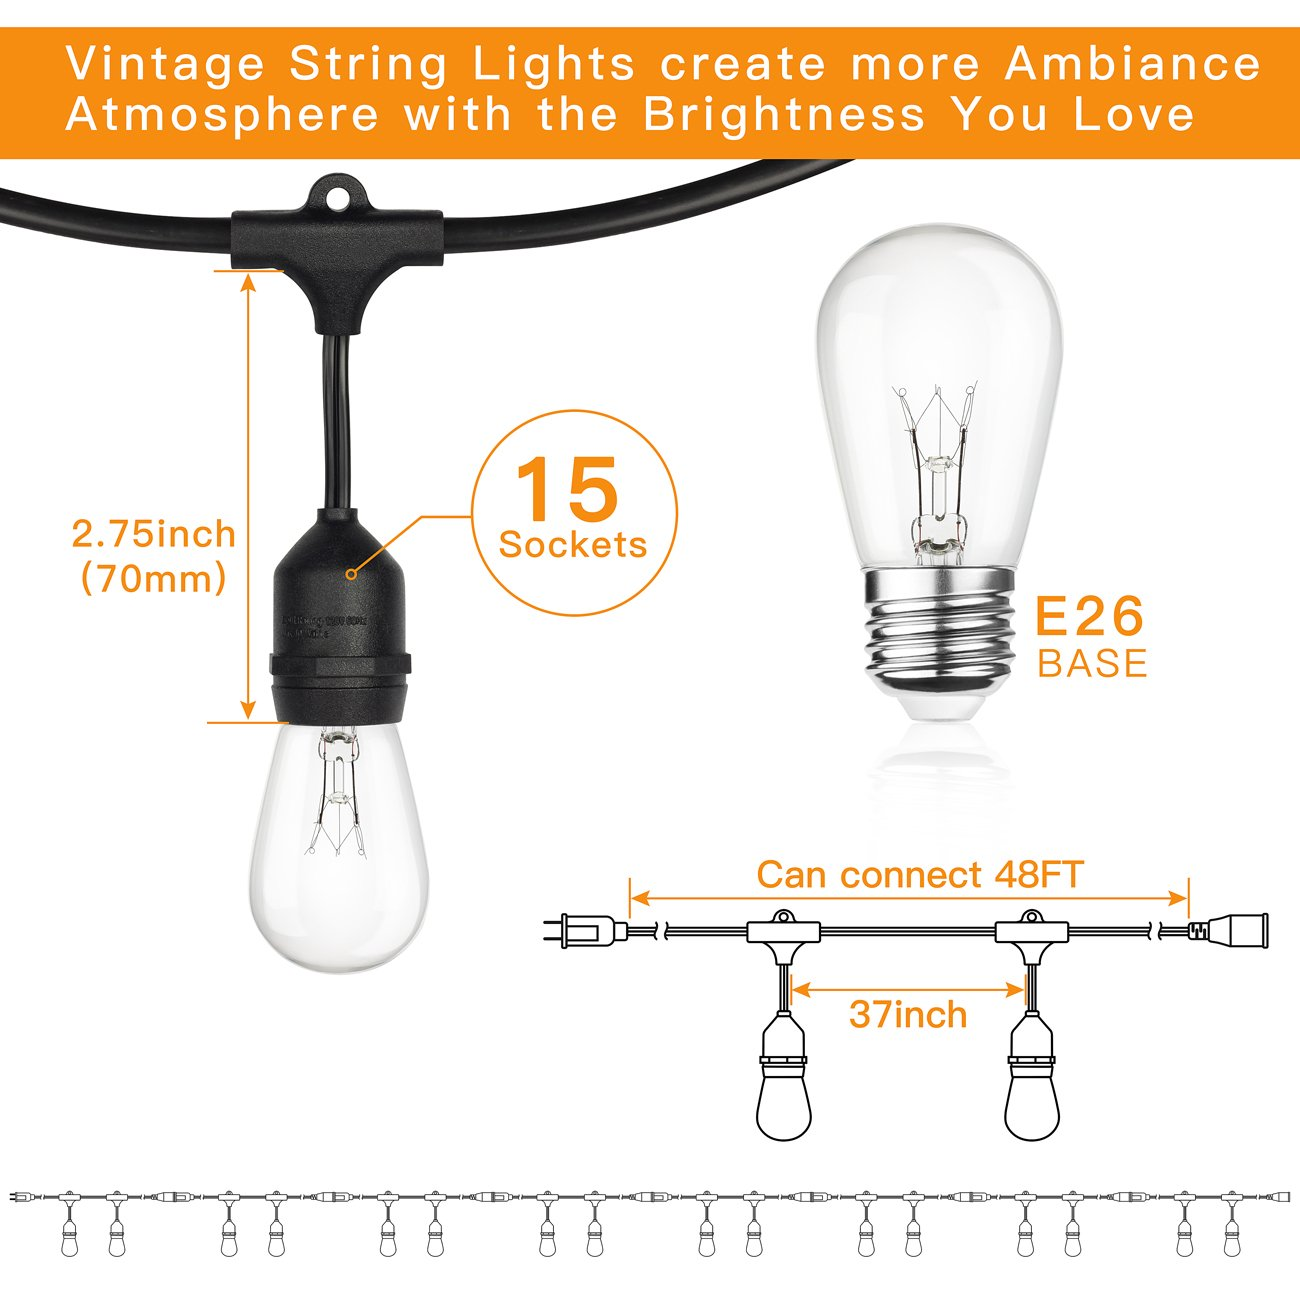 2-Pack 48Ft Heavy Duty Outdoor Patio String lights, Edison Vintage Dimmable 11S14 Bulbs w/ Hanging Sockets, Commercial Grade Weatherproof Market Cafe Lights for Bistro Backyard Pergola Party, Blk by SHINE HAI (Image #4)